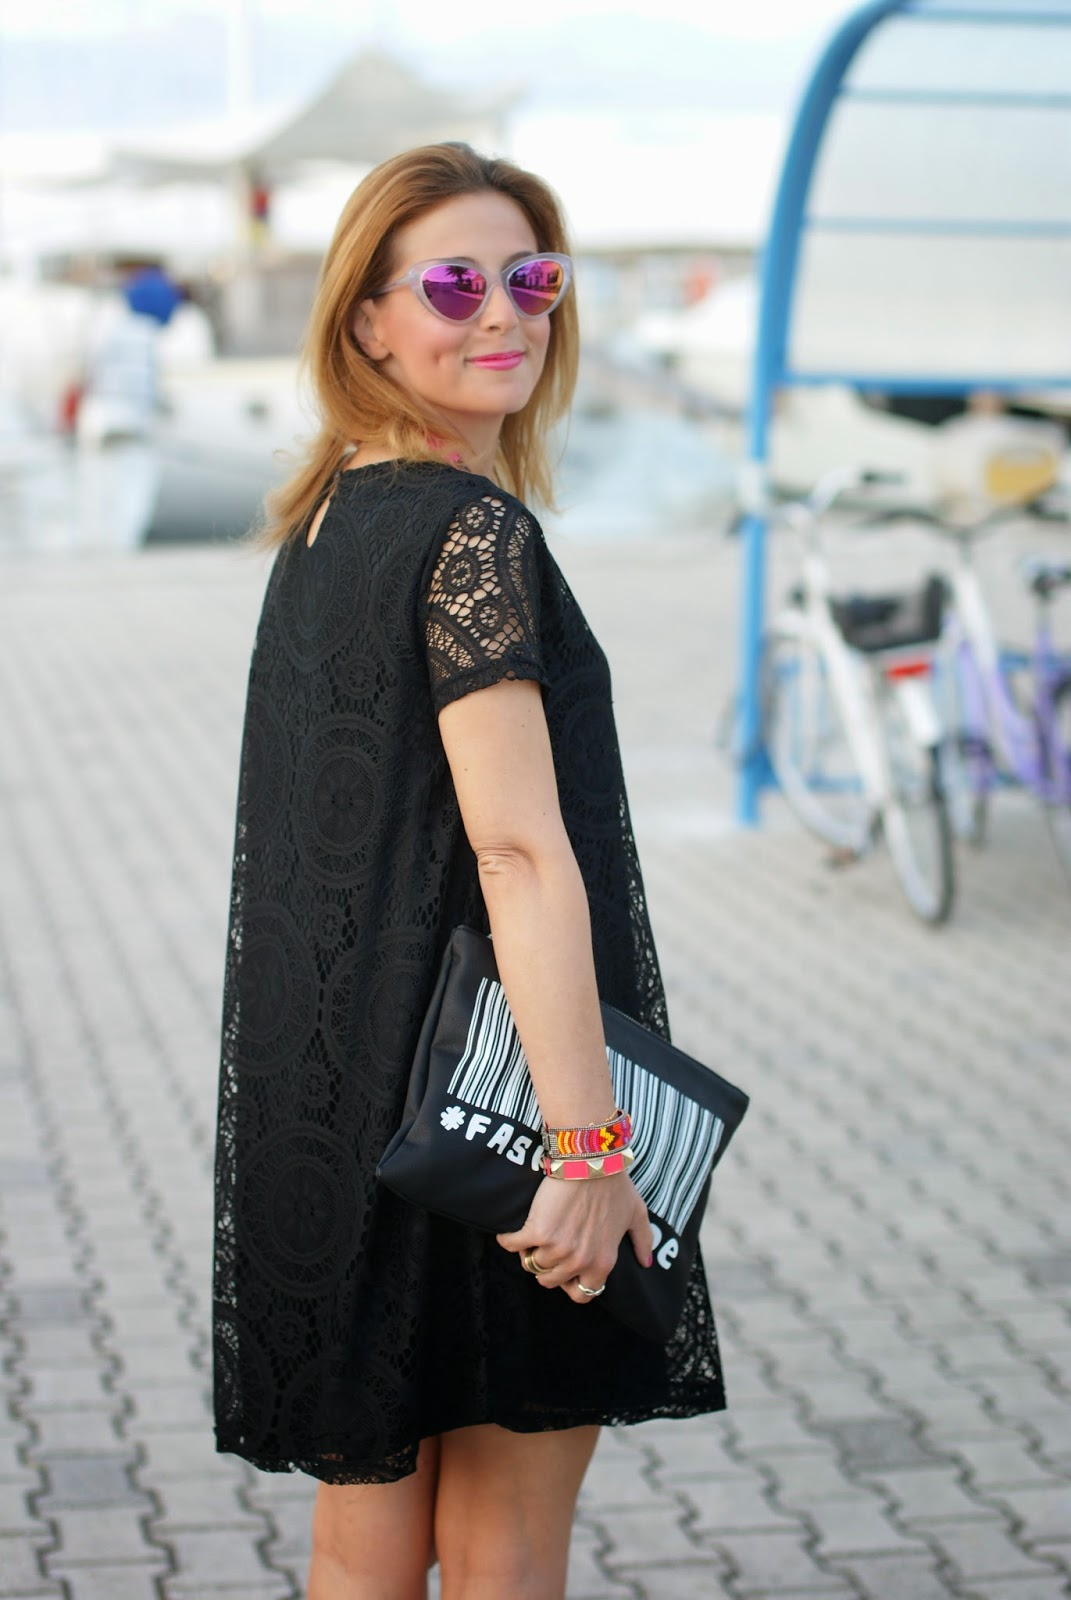 Essequadro eyewear, Fato creazioni, Roberto Botticelli sandals, Blackfive lace dress, pink sunglasses, Fashion and Cookies, fashion blogger